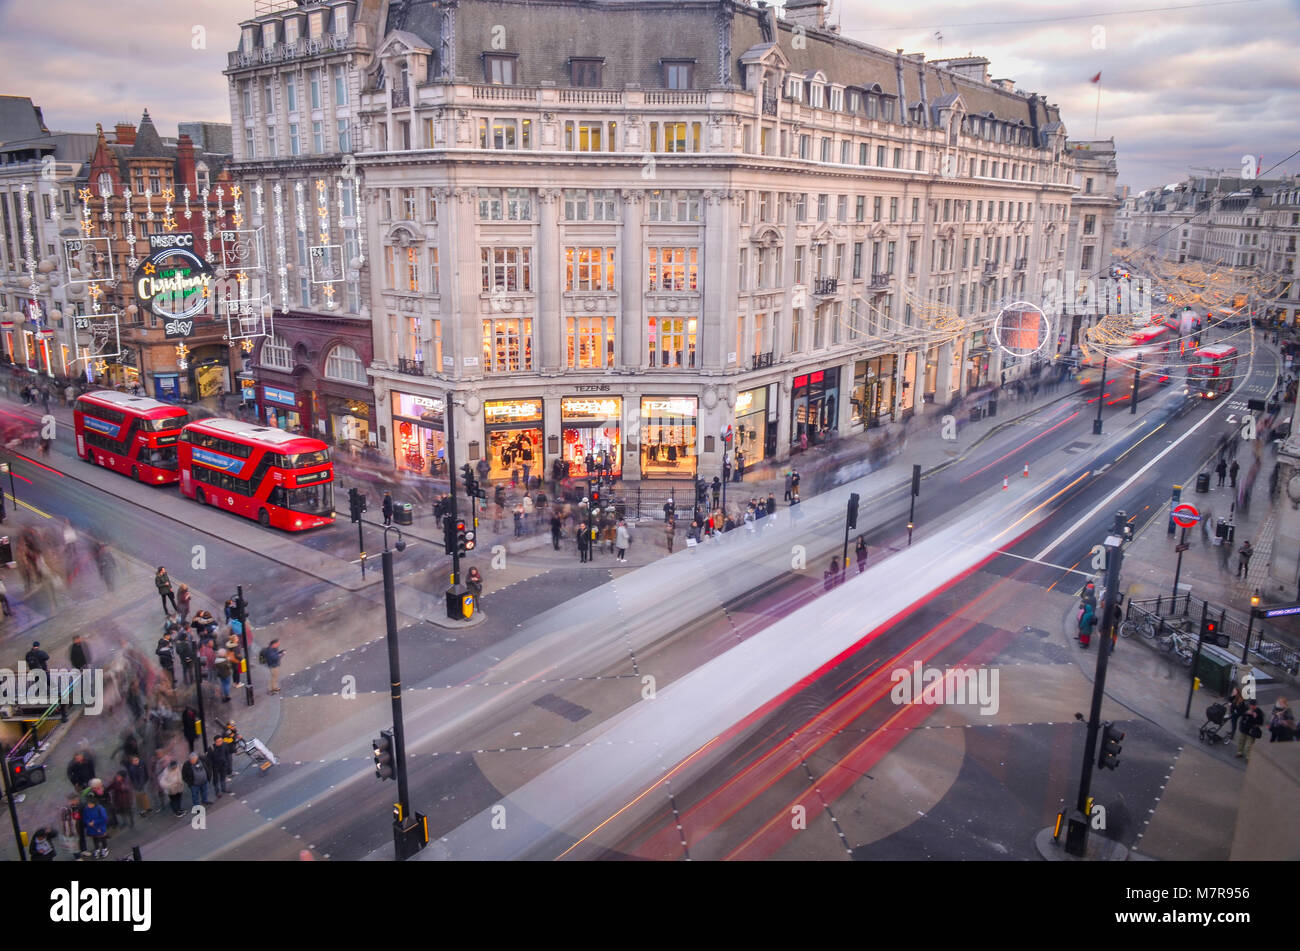 Oxford Circus between Oxford Street and Regent Street- iconic London landmark from above - Stock Image